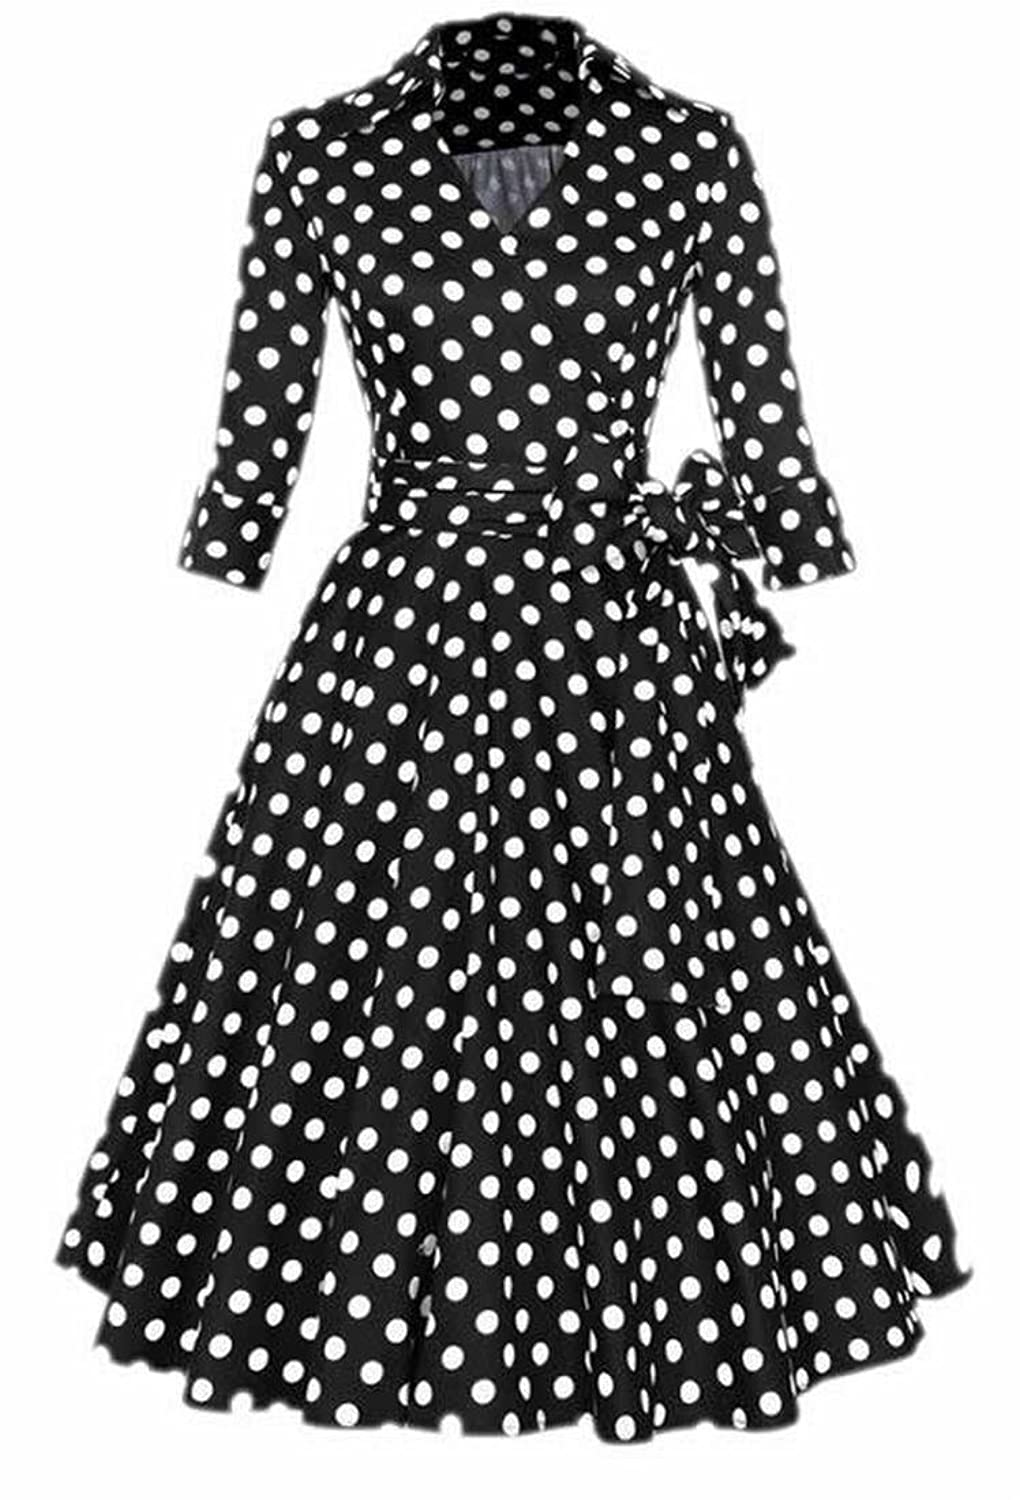 EKU Womens Vintage Polka Dot Swing Dress Flared Dress